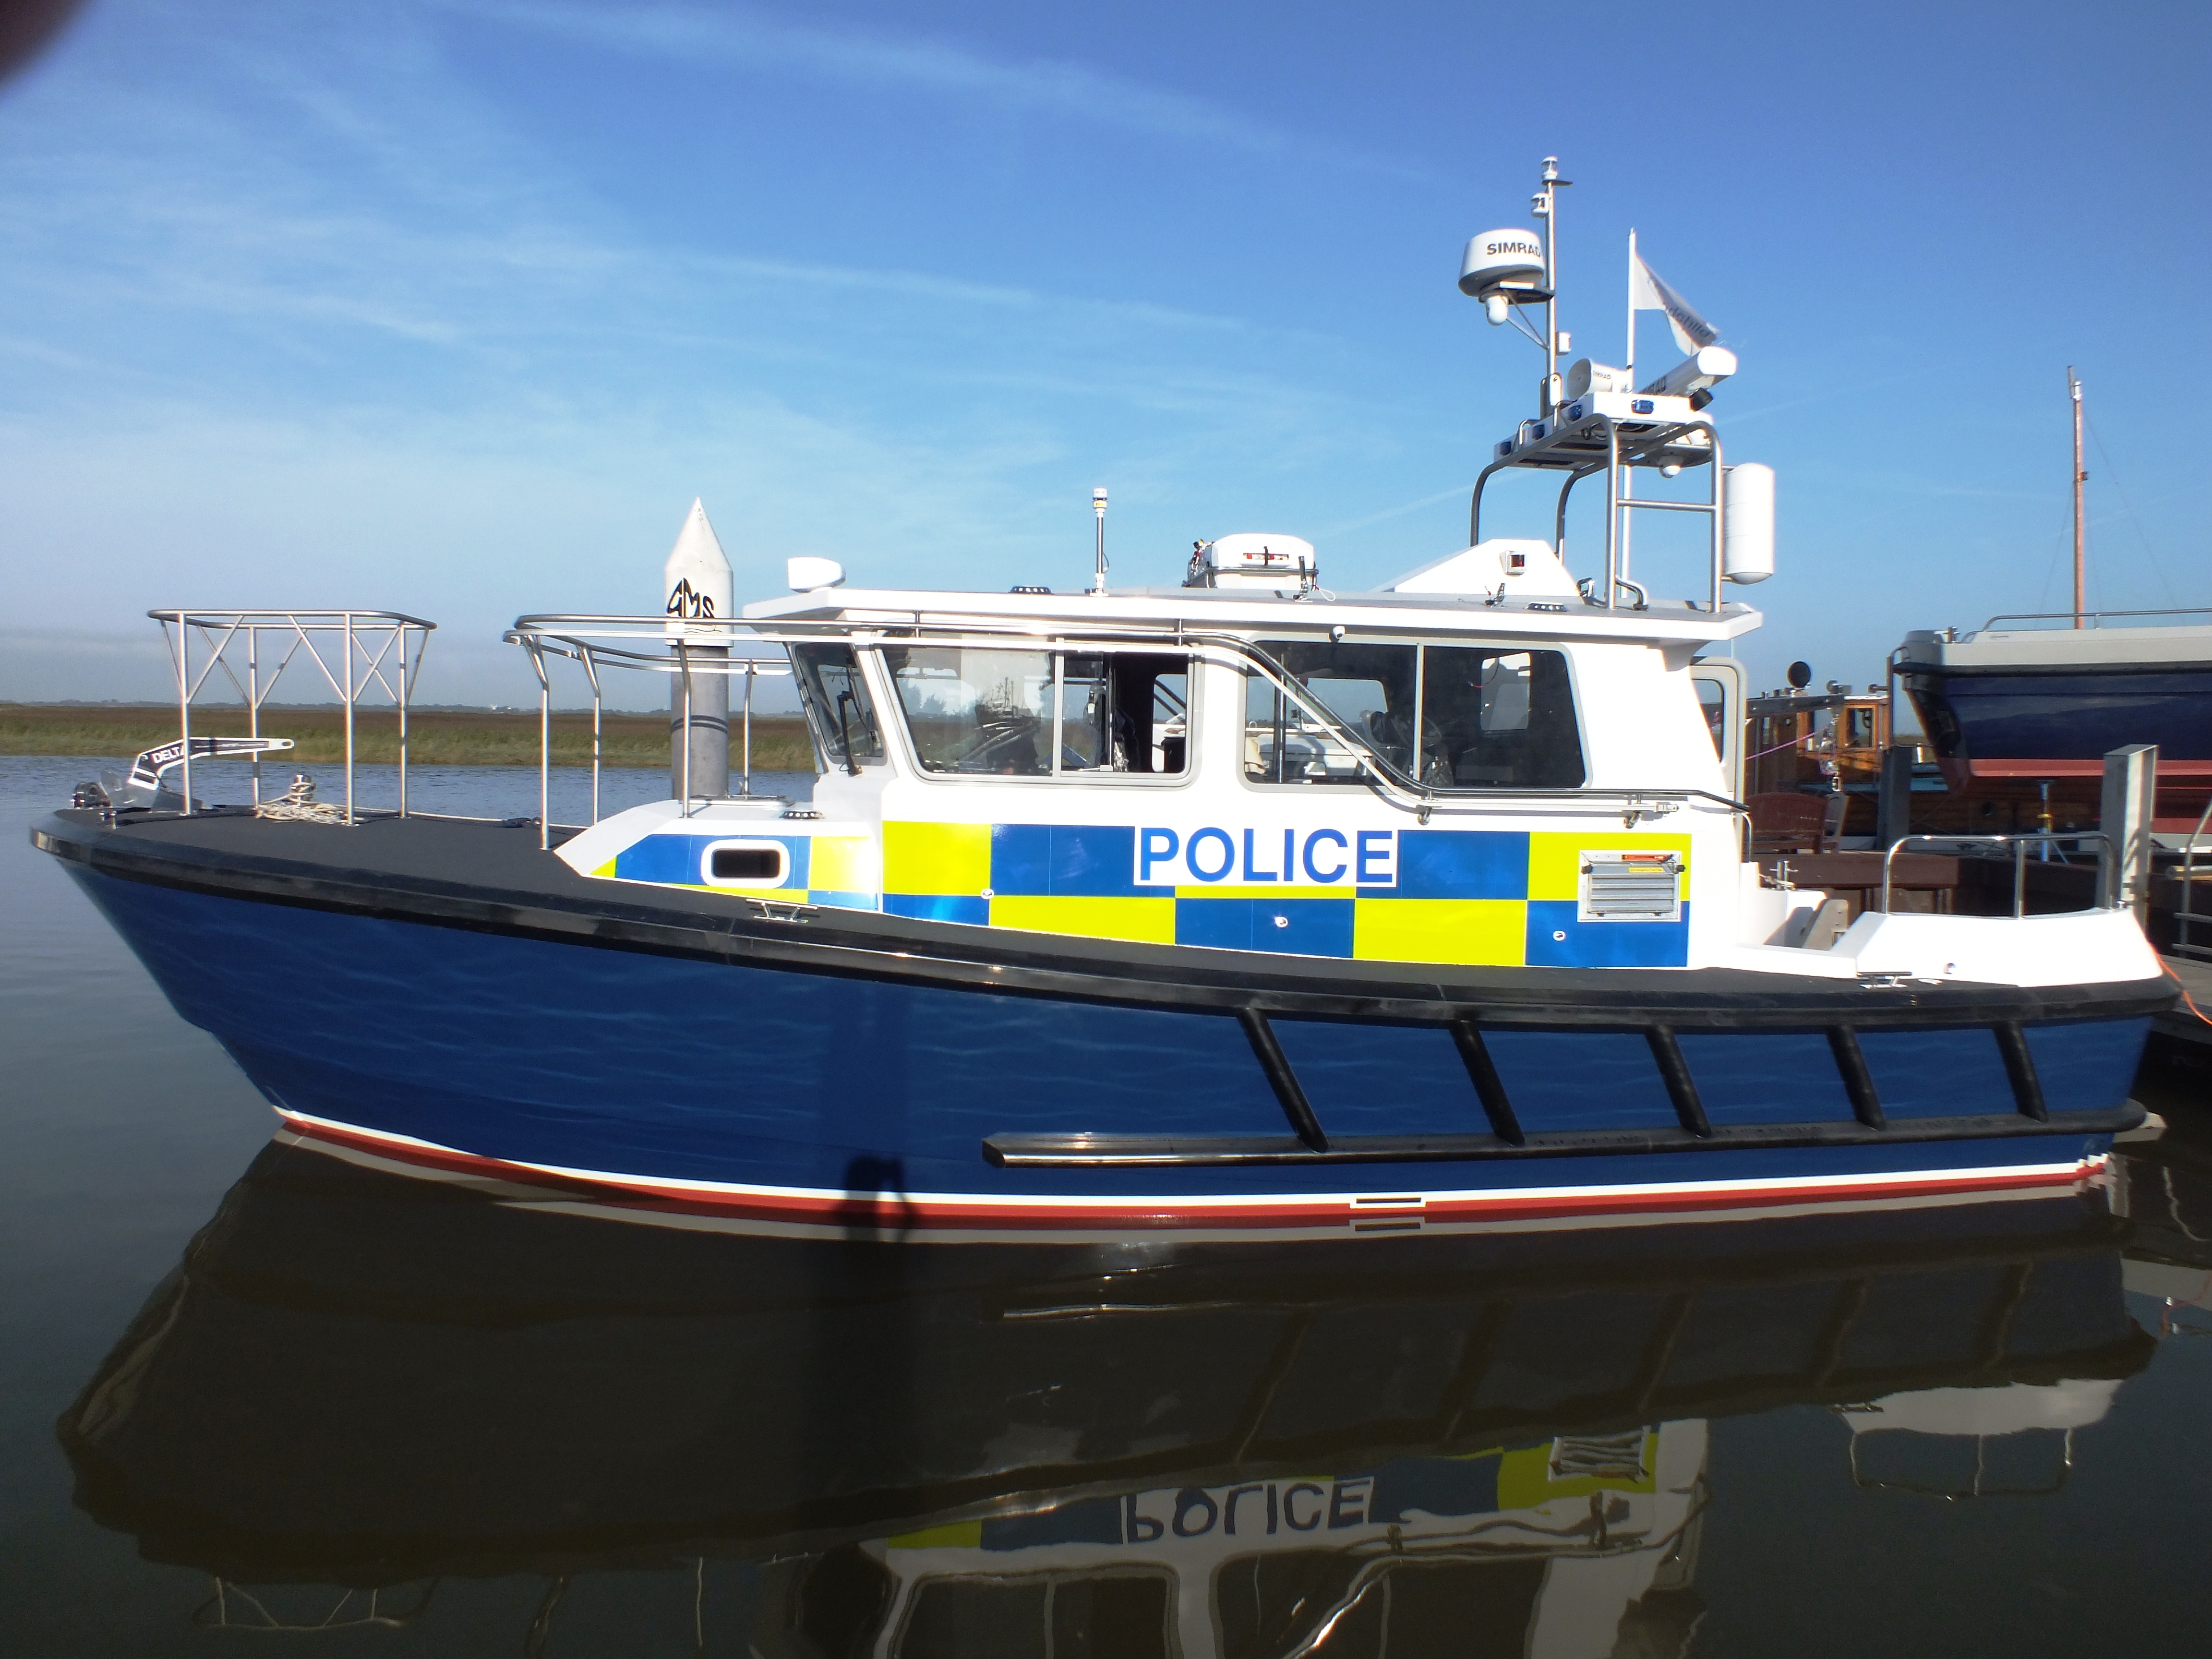 lochin 367 - Police Launch, Hampshire Police